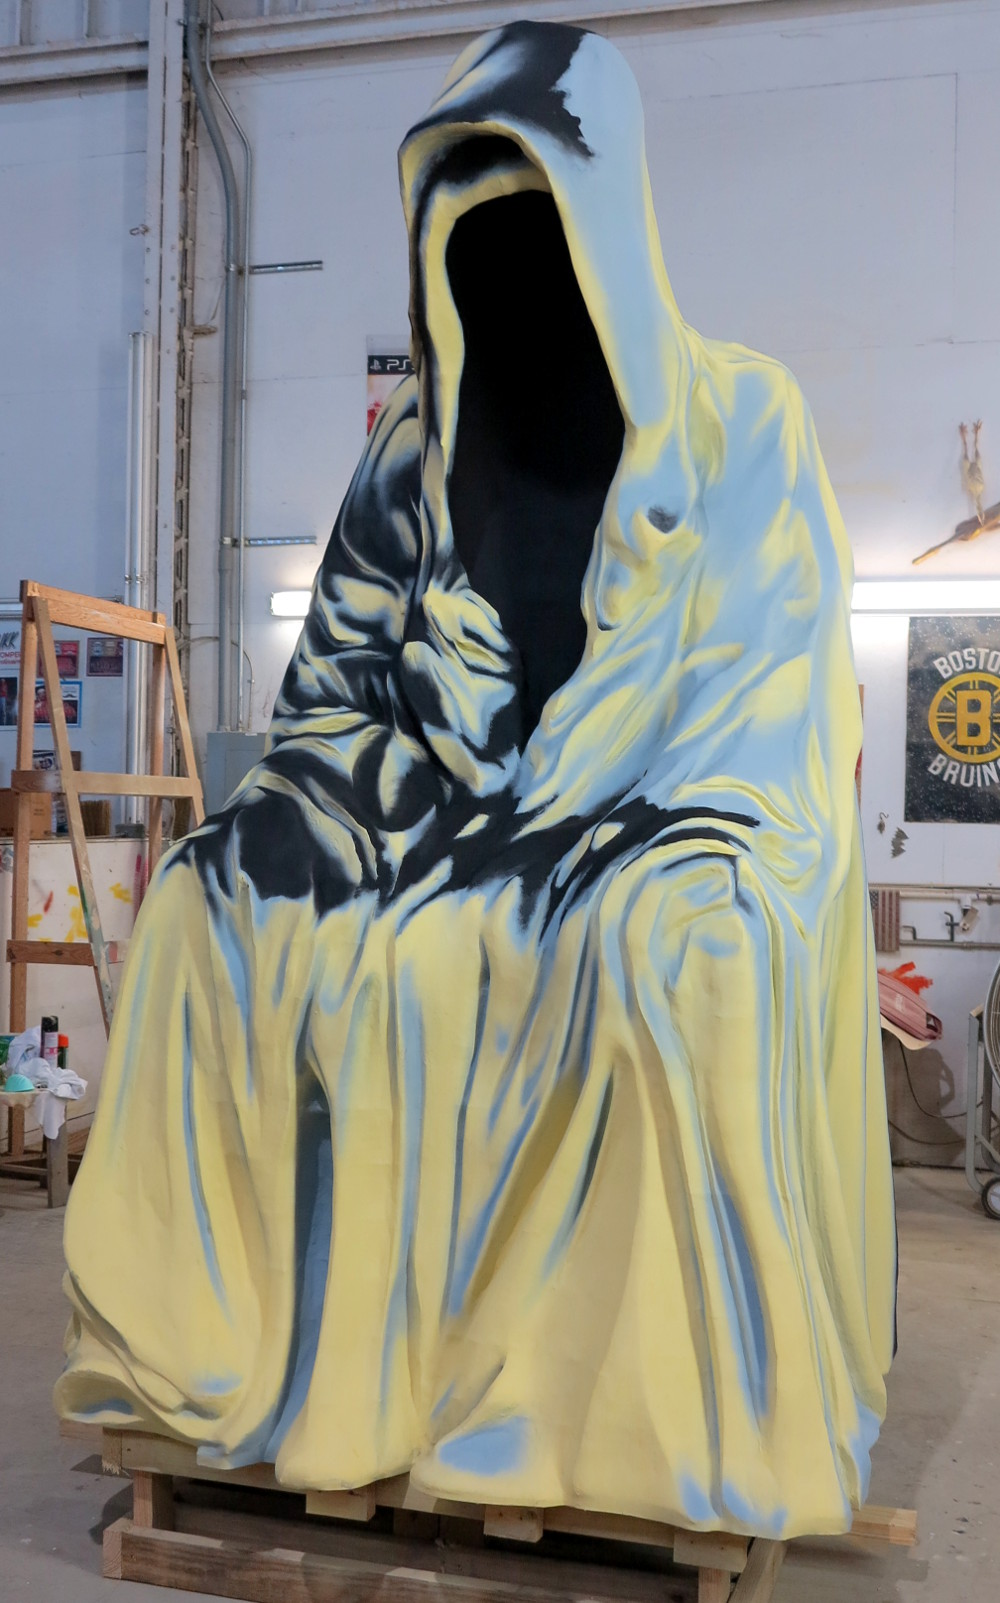 Grim reaper at Mardi Gras World New Orleans Double-Barrelled Travel